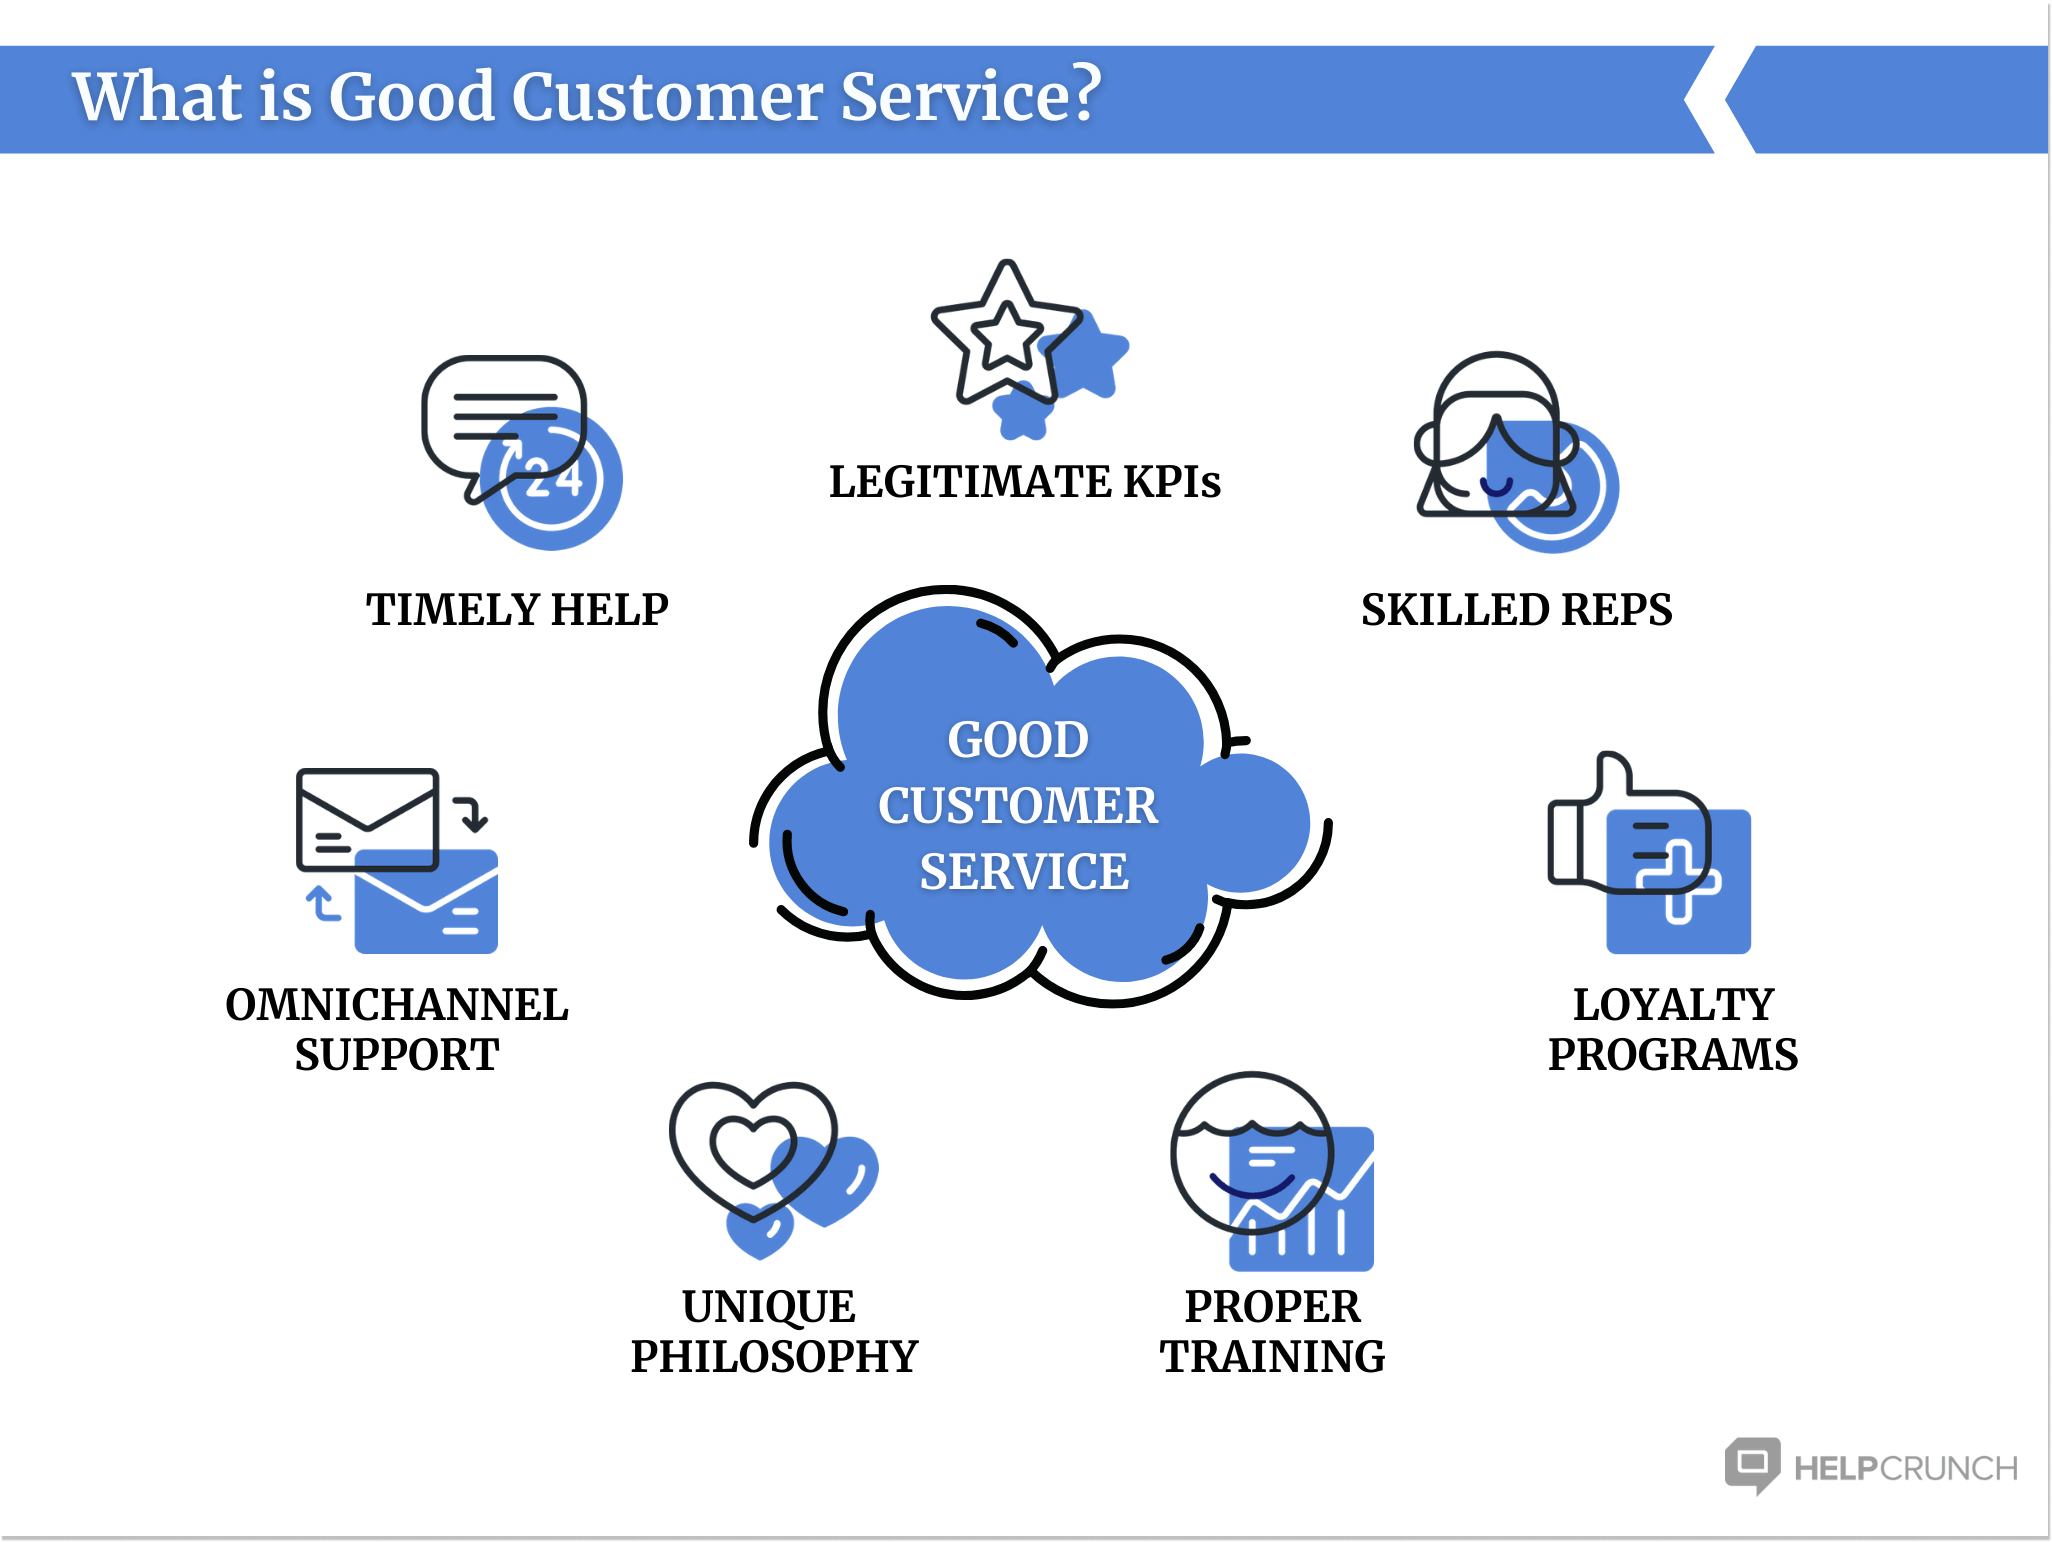 what is good customer service by HelpCrunch